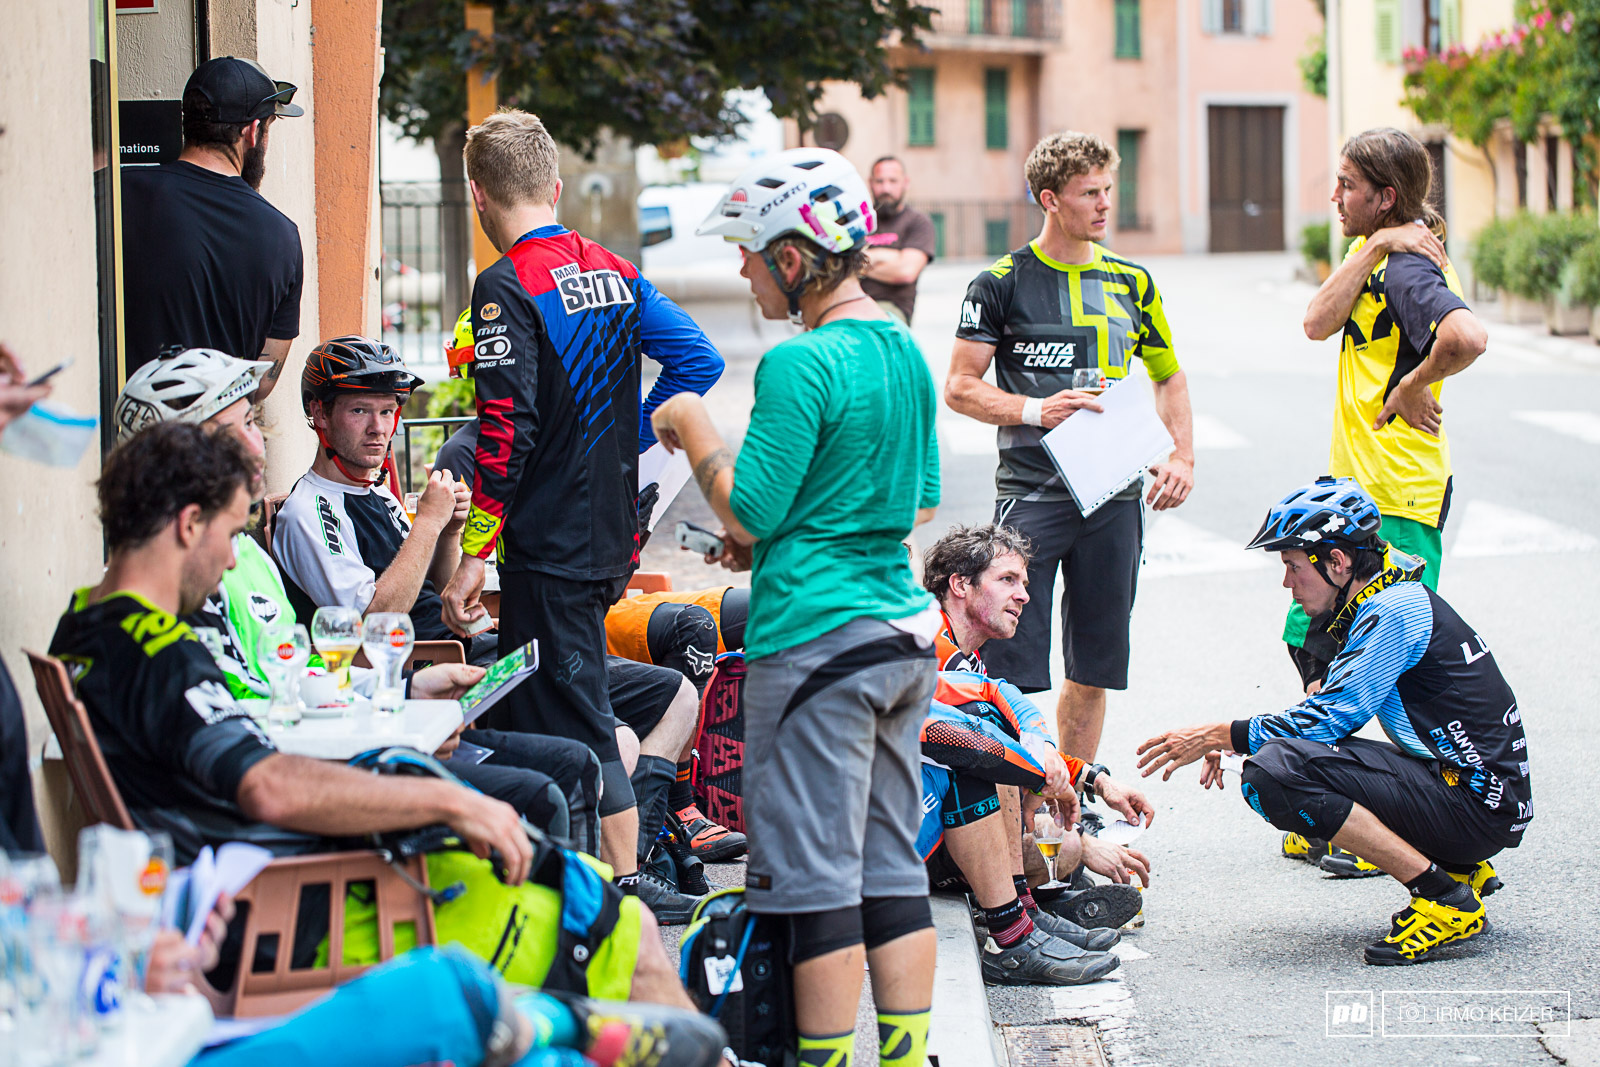 Riders await transfer to the camp high up in the mountains enjoying cold drinks and sharing stories.